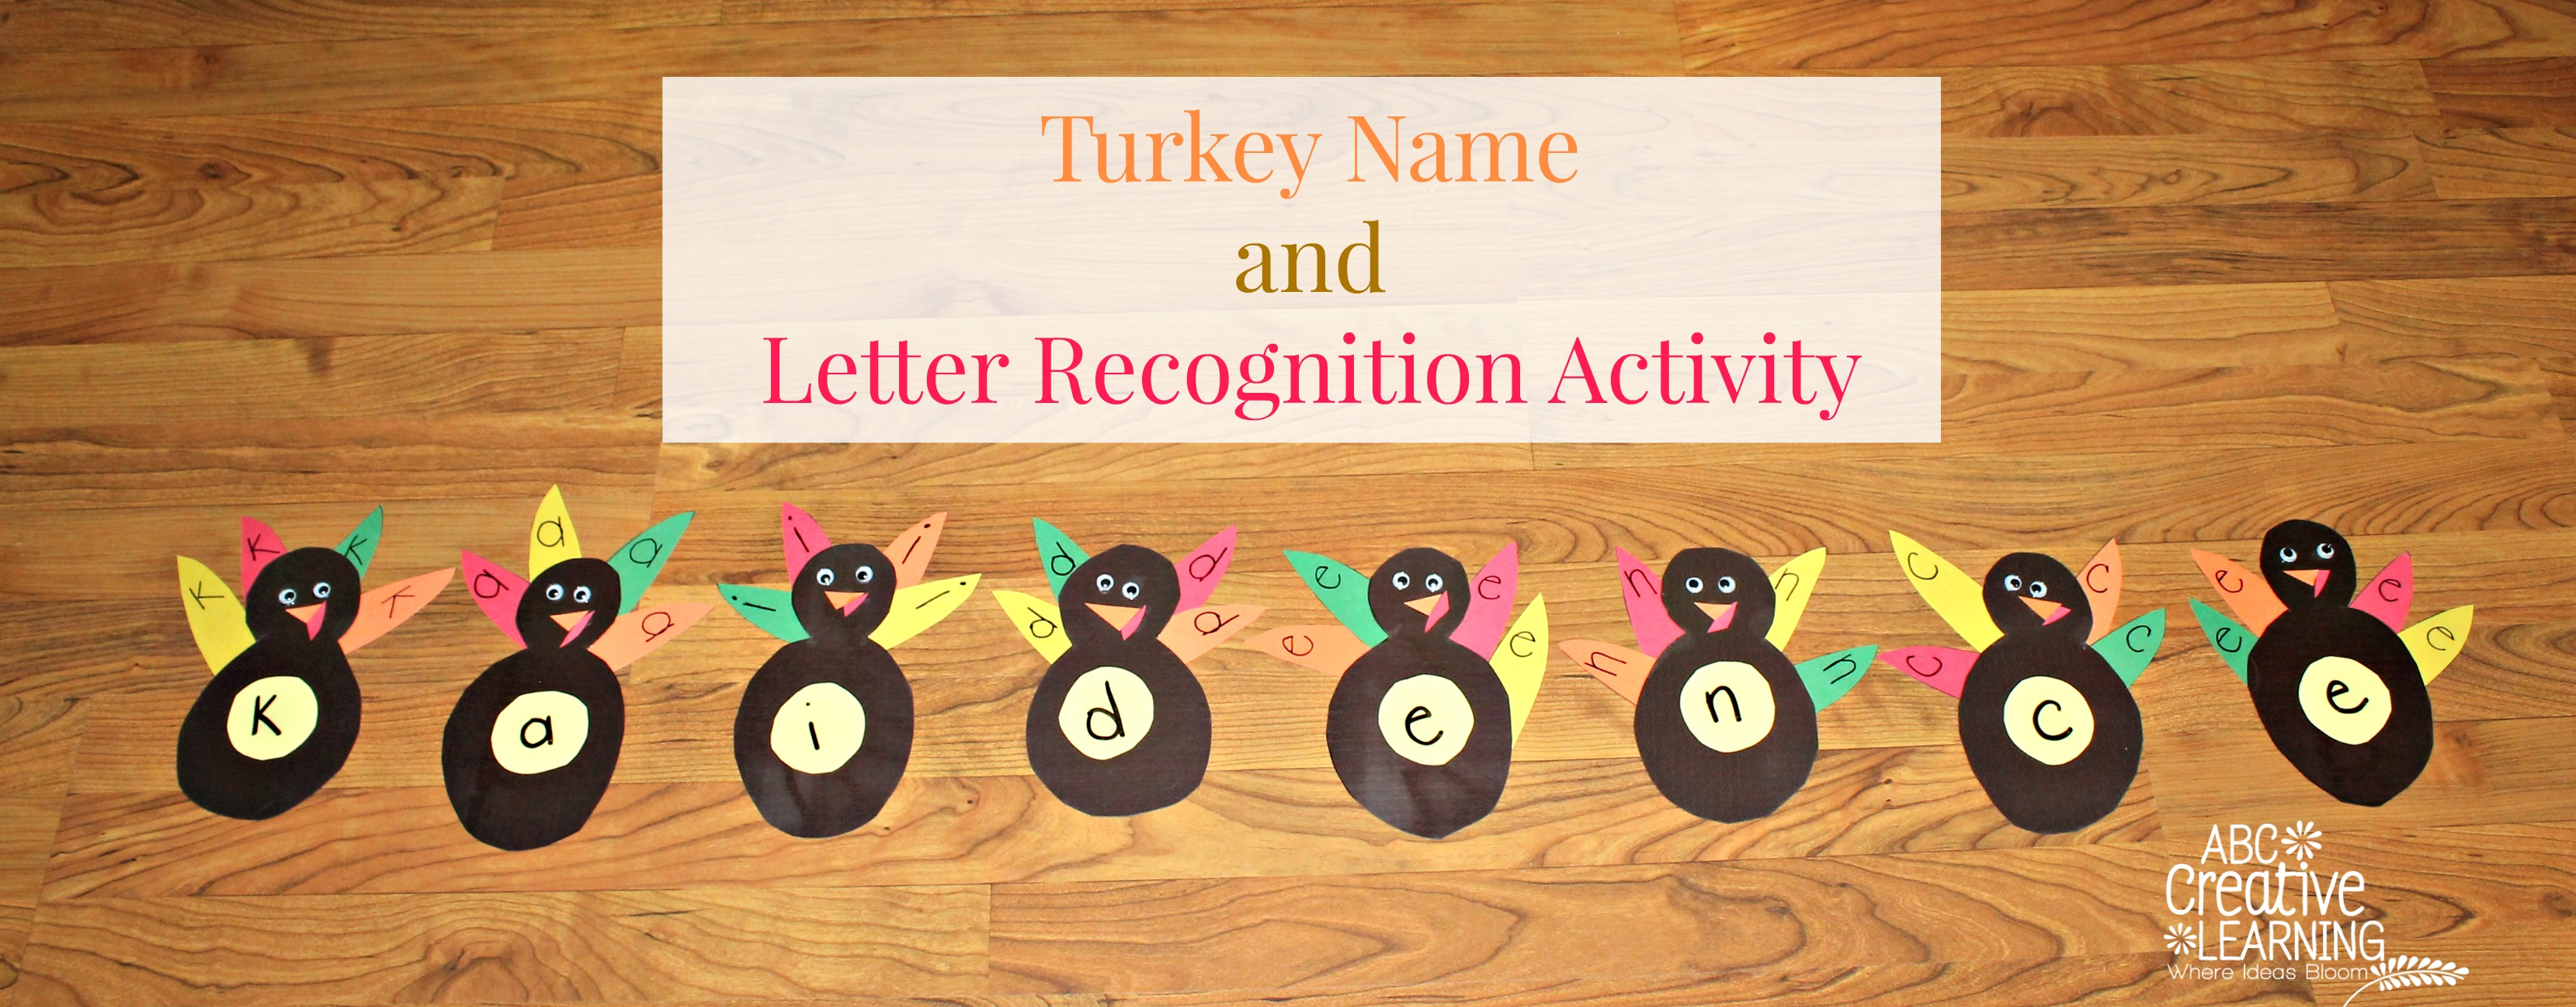 Turkey Name and Letter Recognition Activity